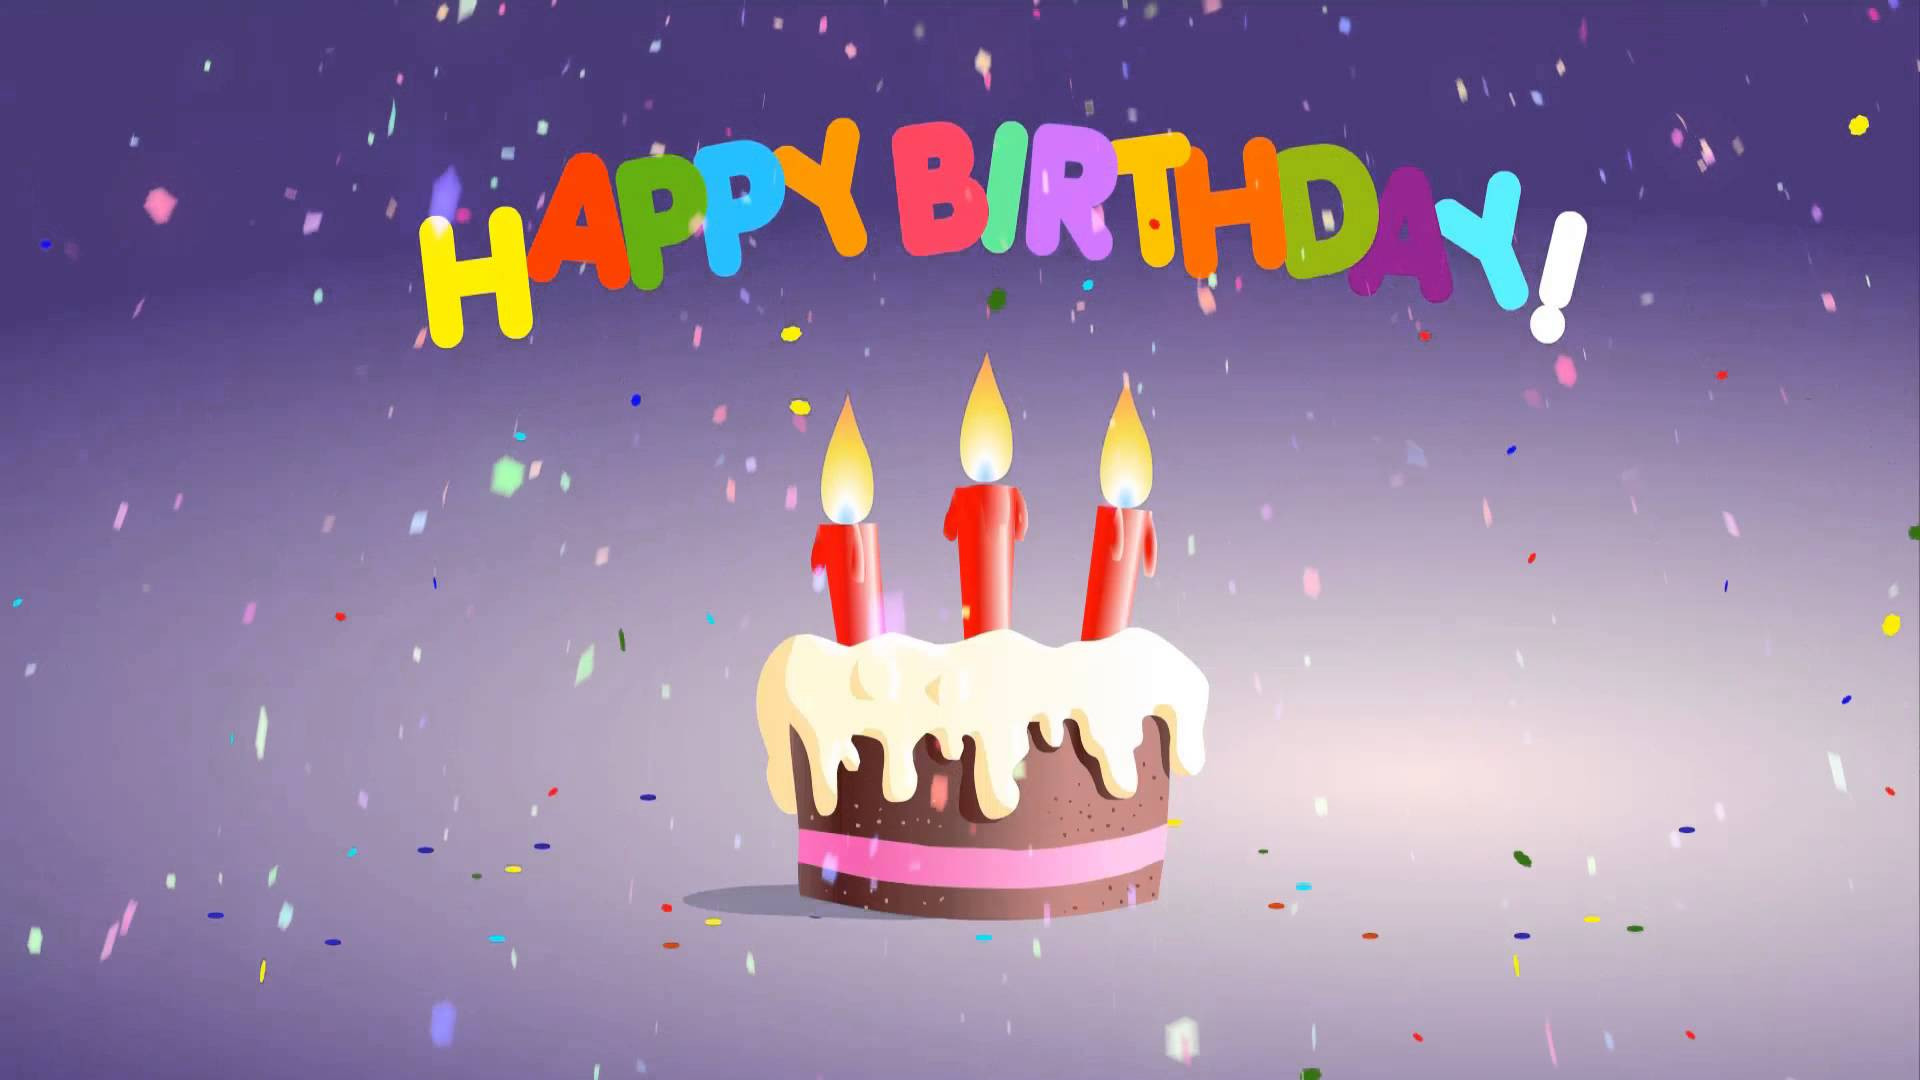 Animated Happy Birthday Wishes  alles Gute zum Geburtstag Bilder animiert HD